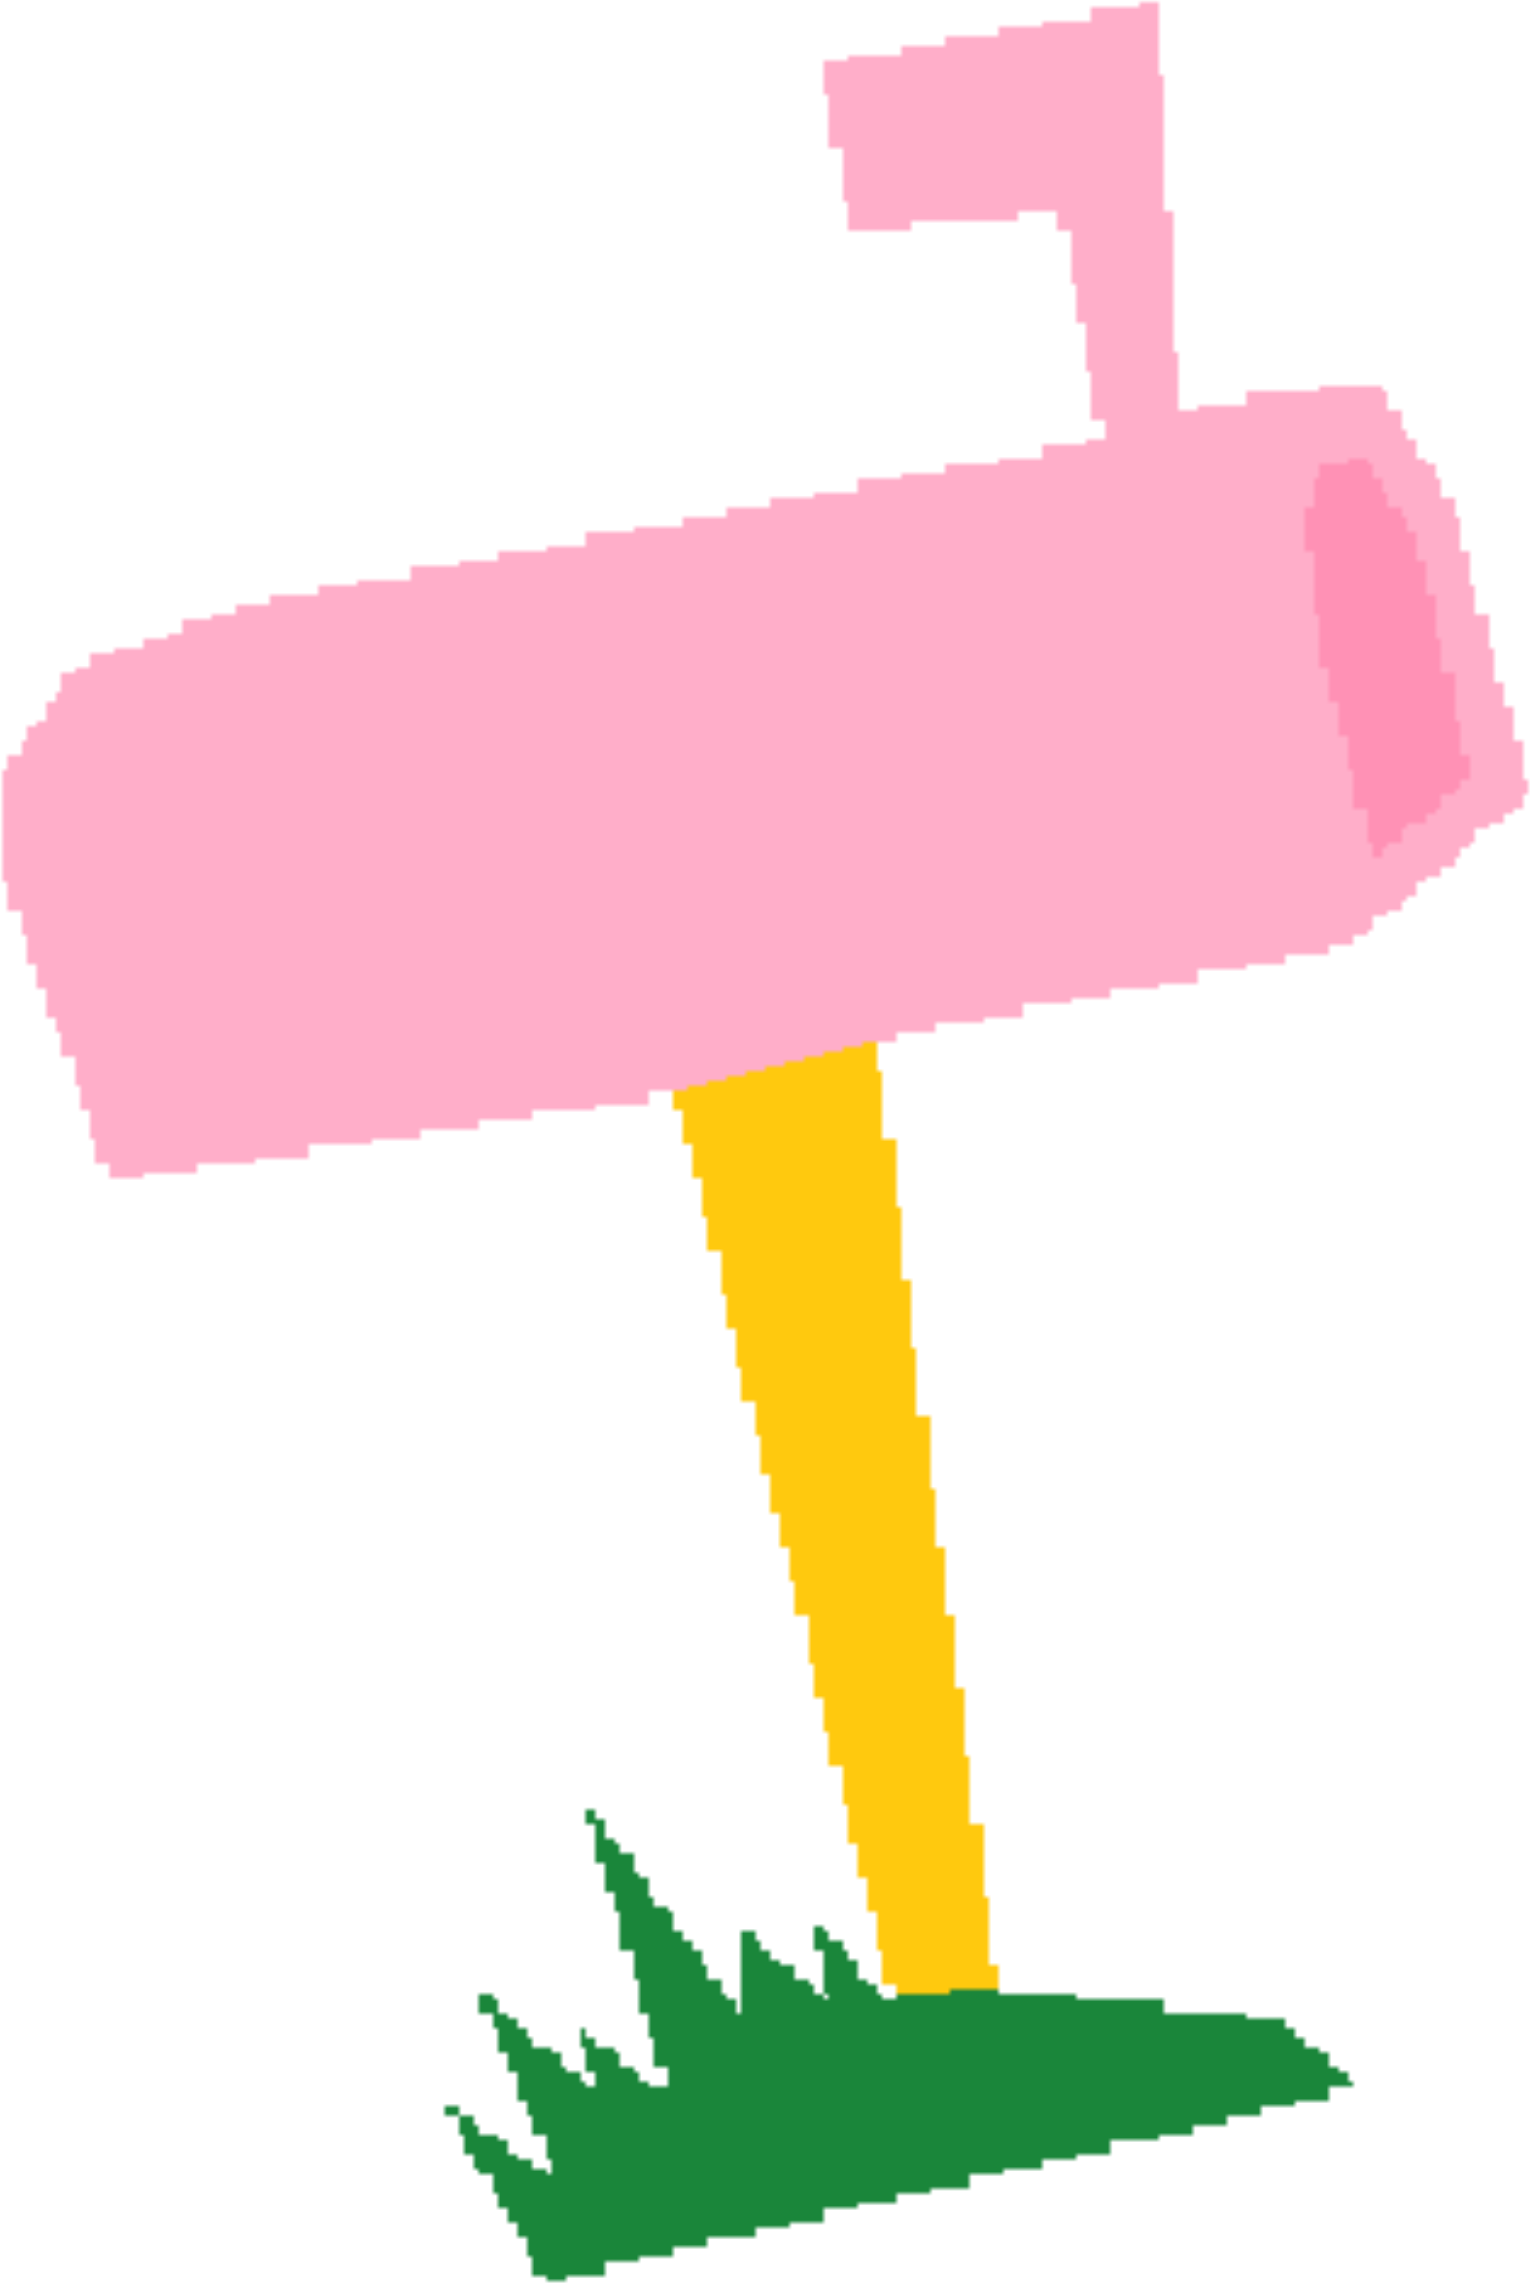 Big image png. Mailbox clipart pink